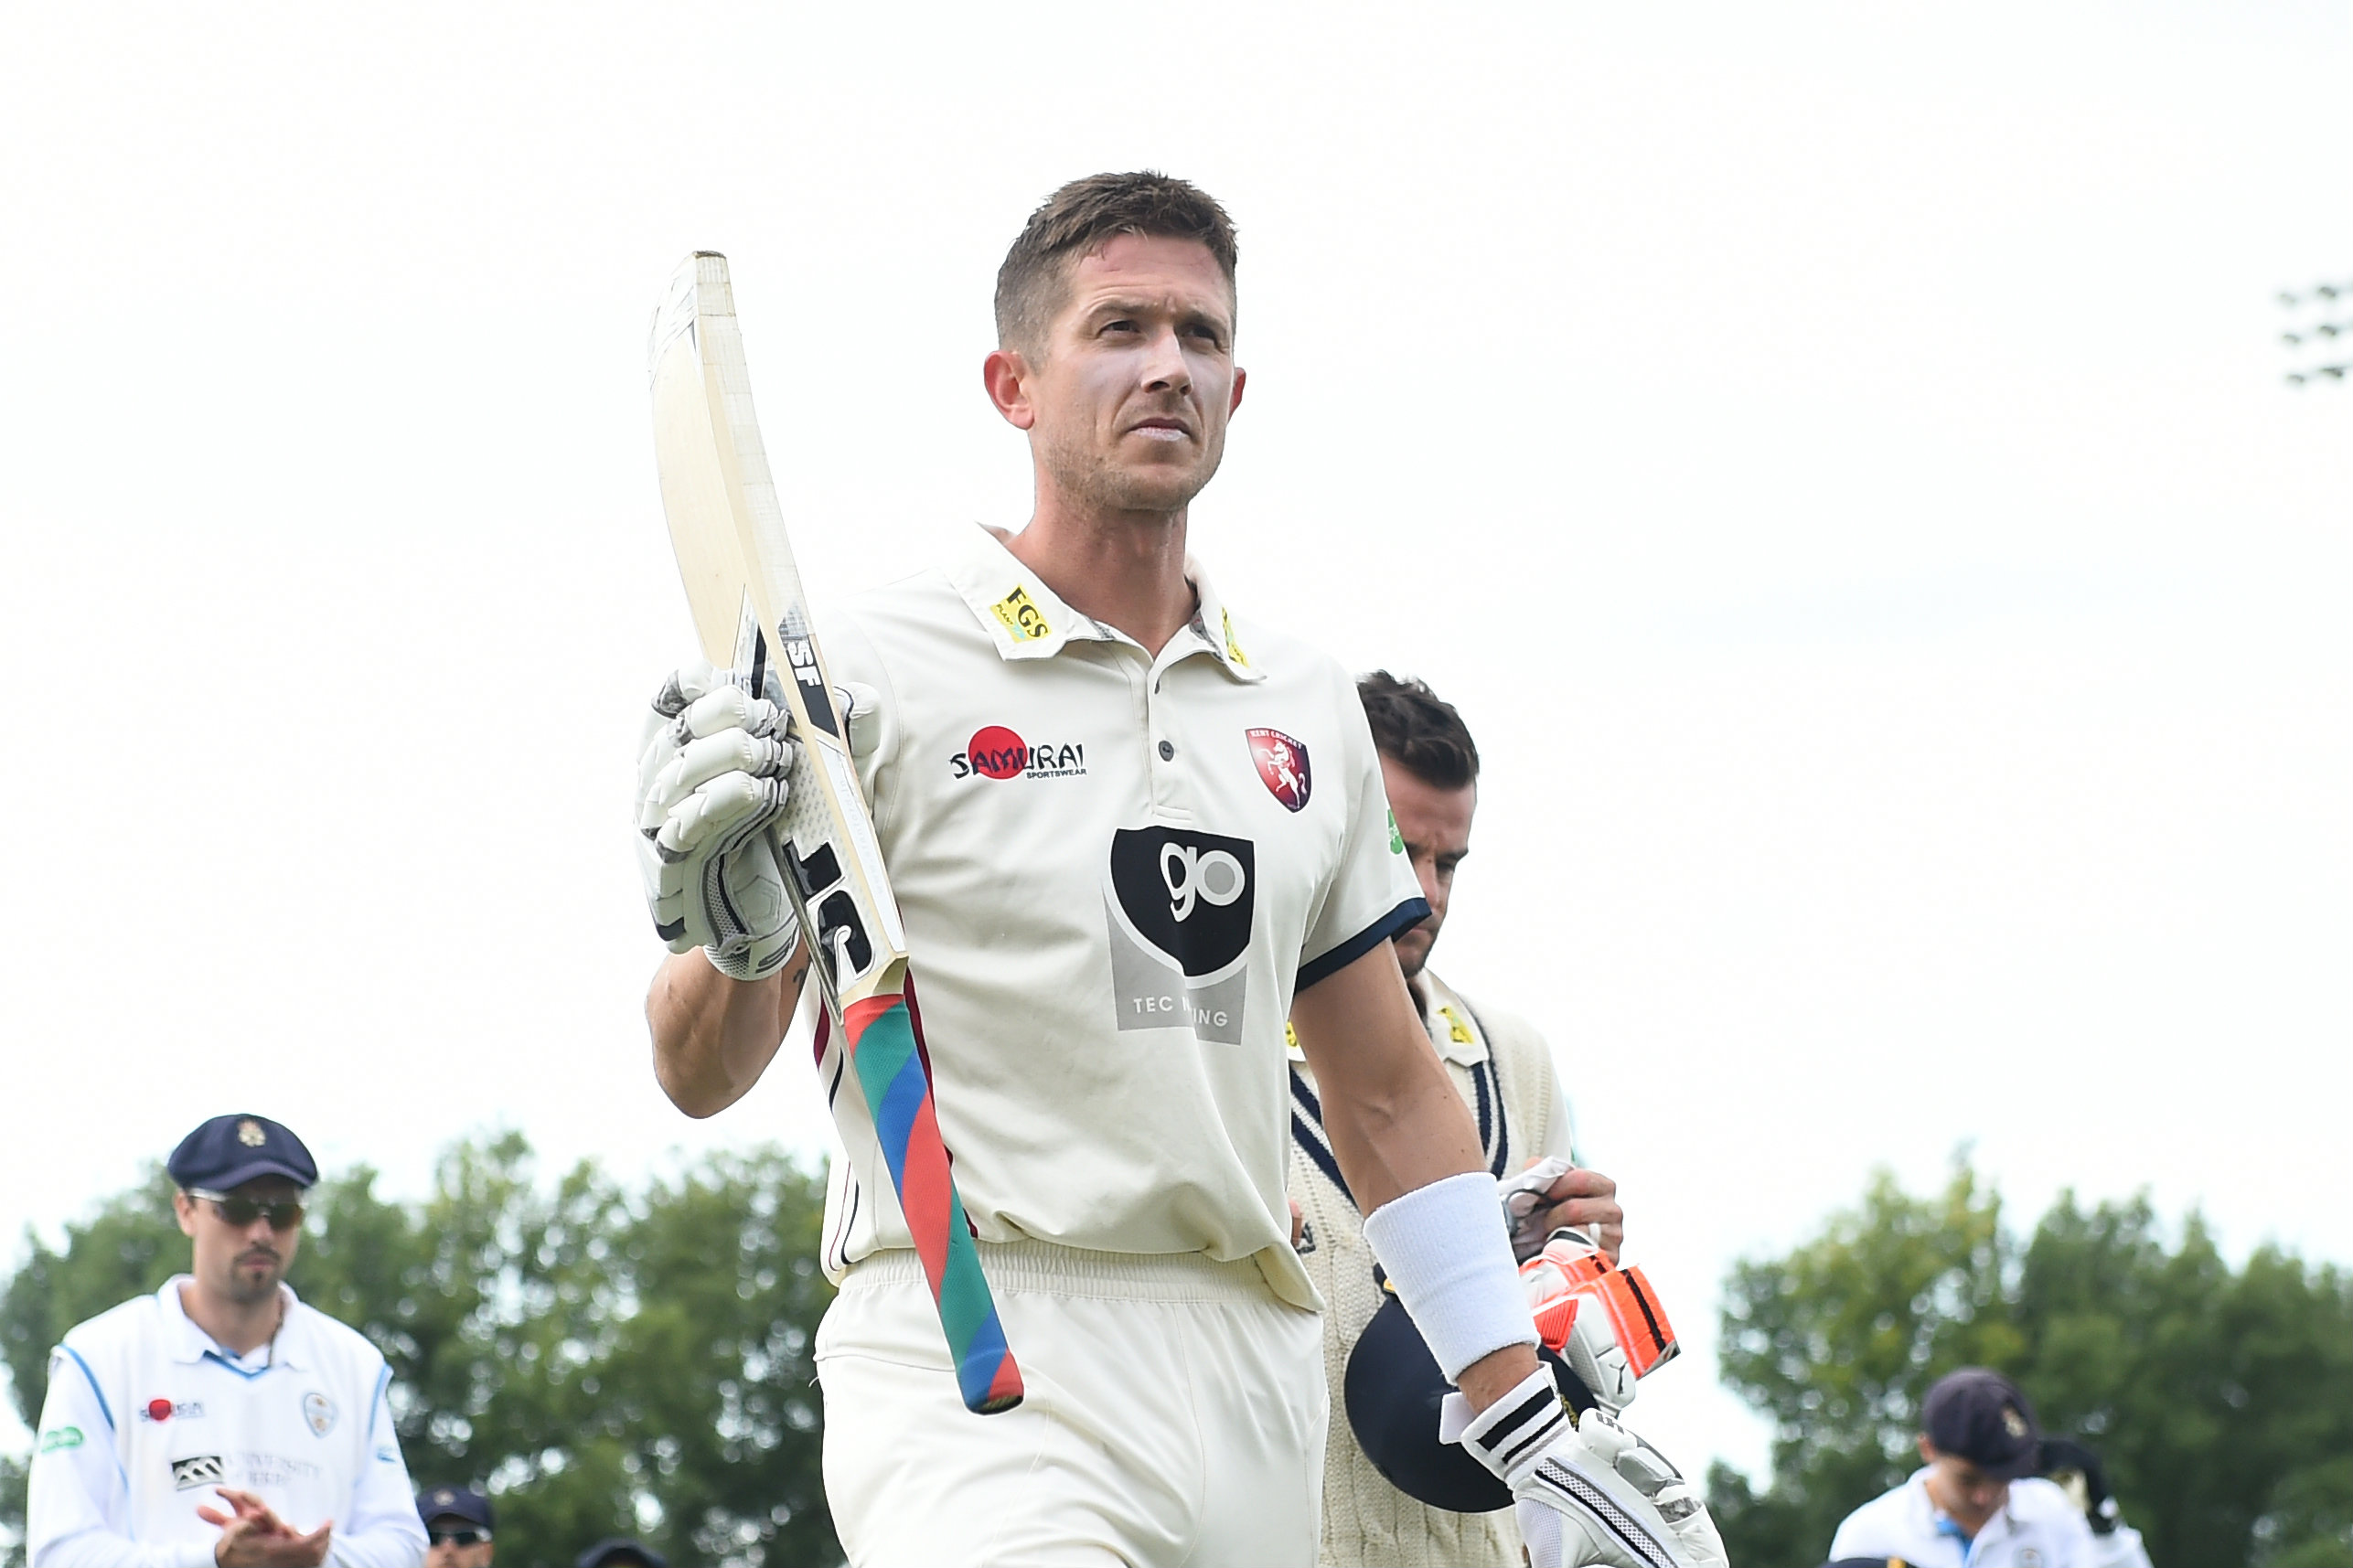 Denly scored 798 runs, including three hundreds and as many half-centuries for Kent this year